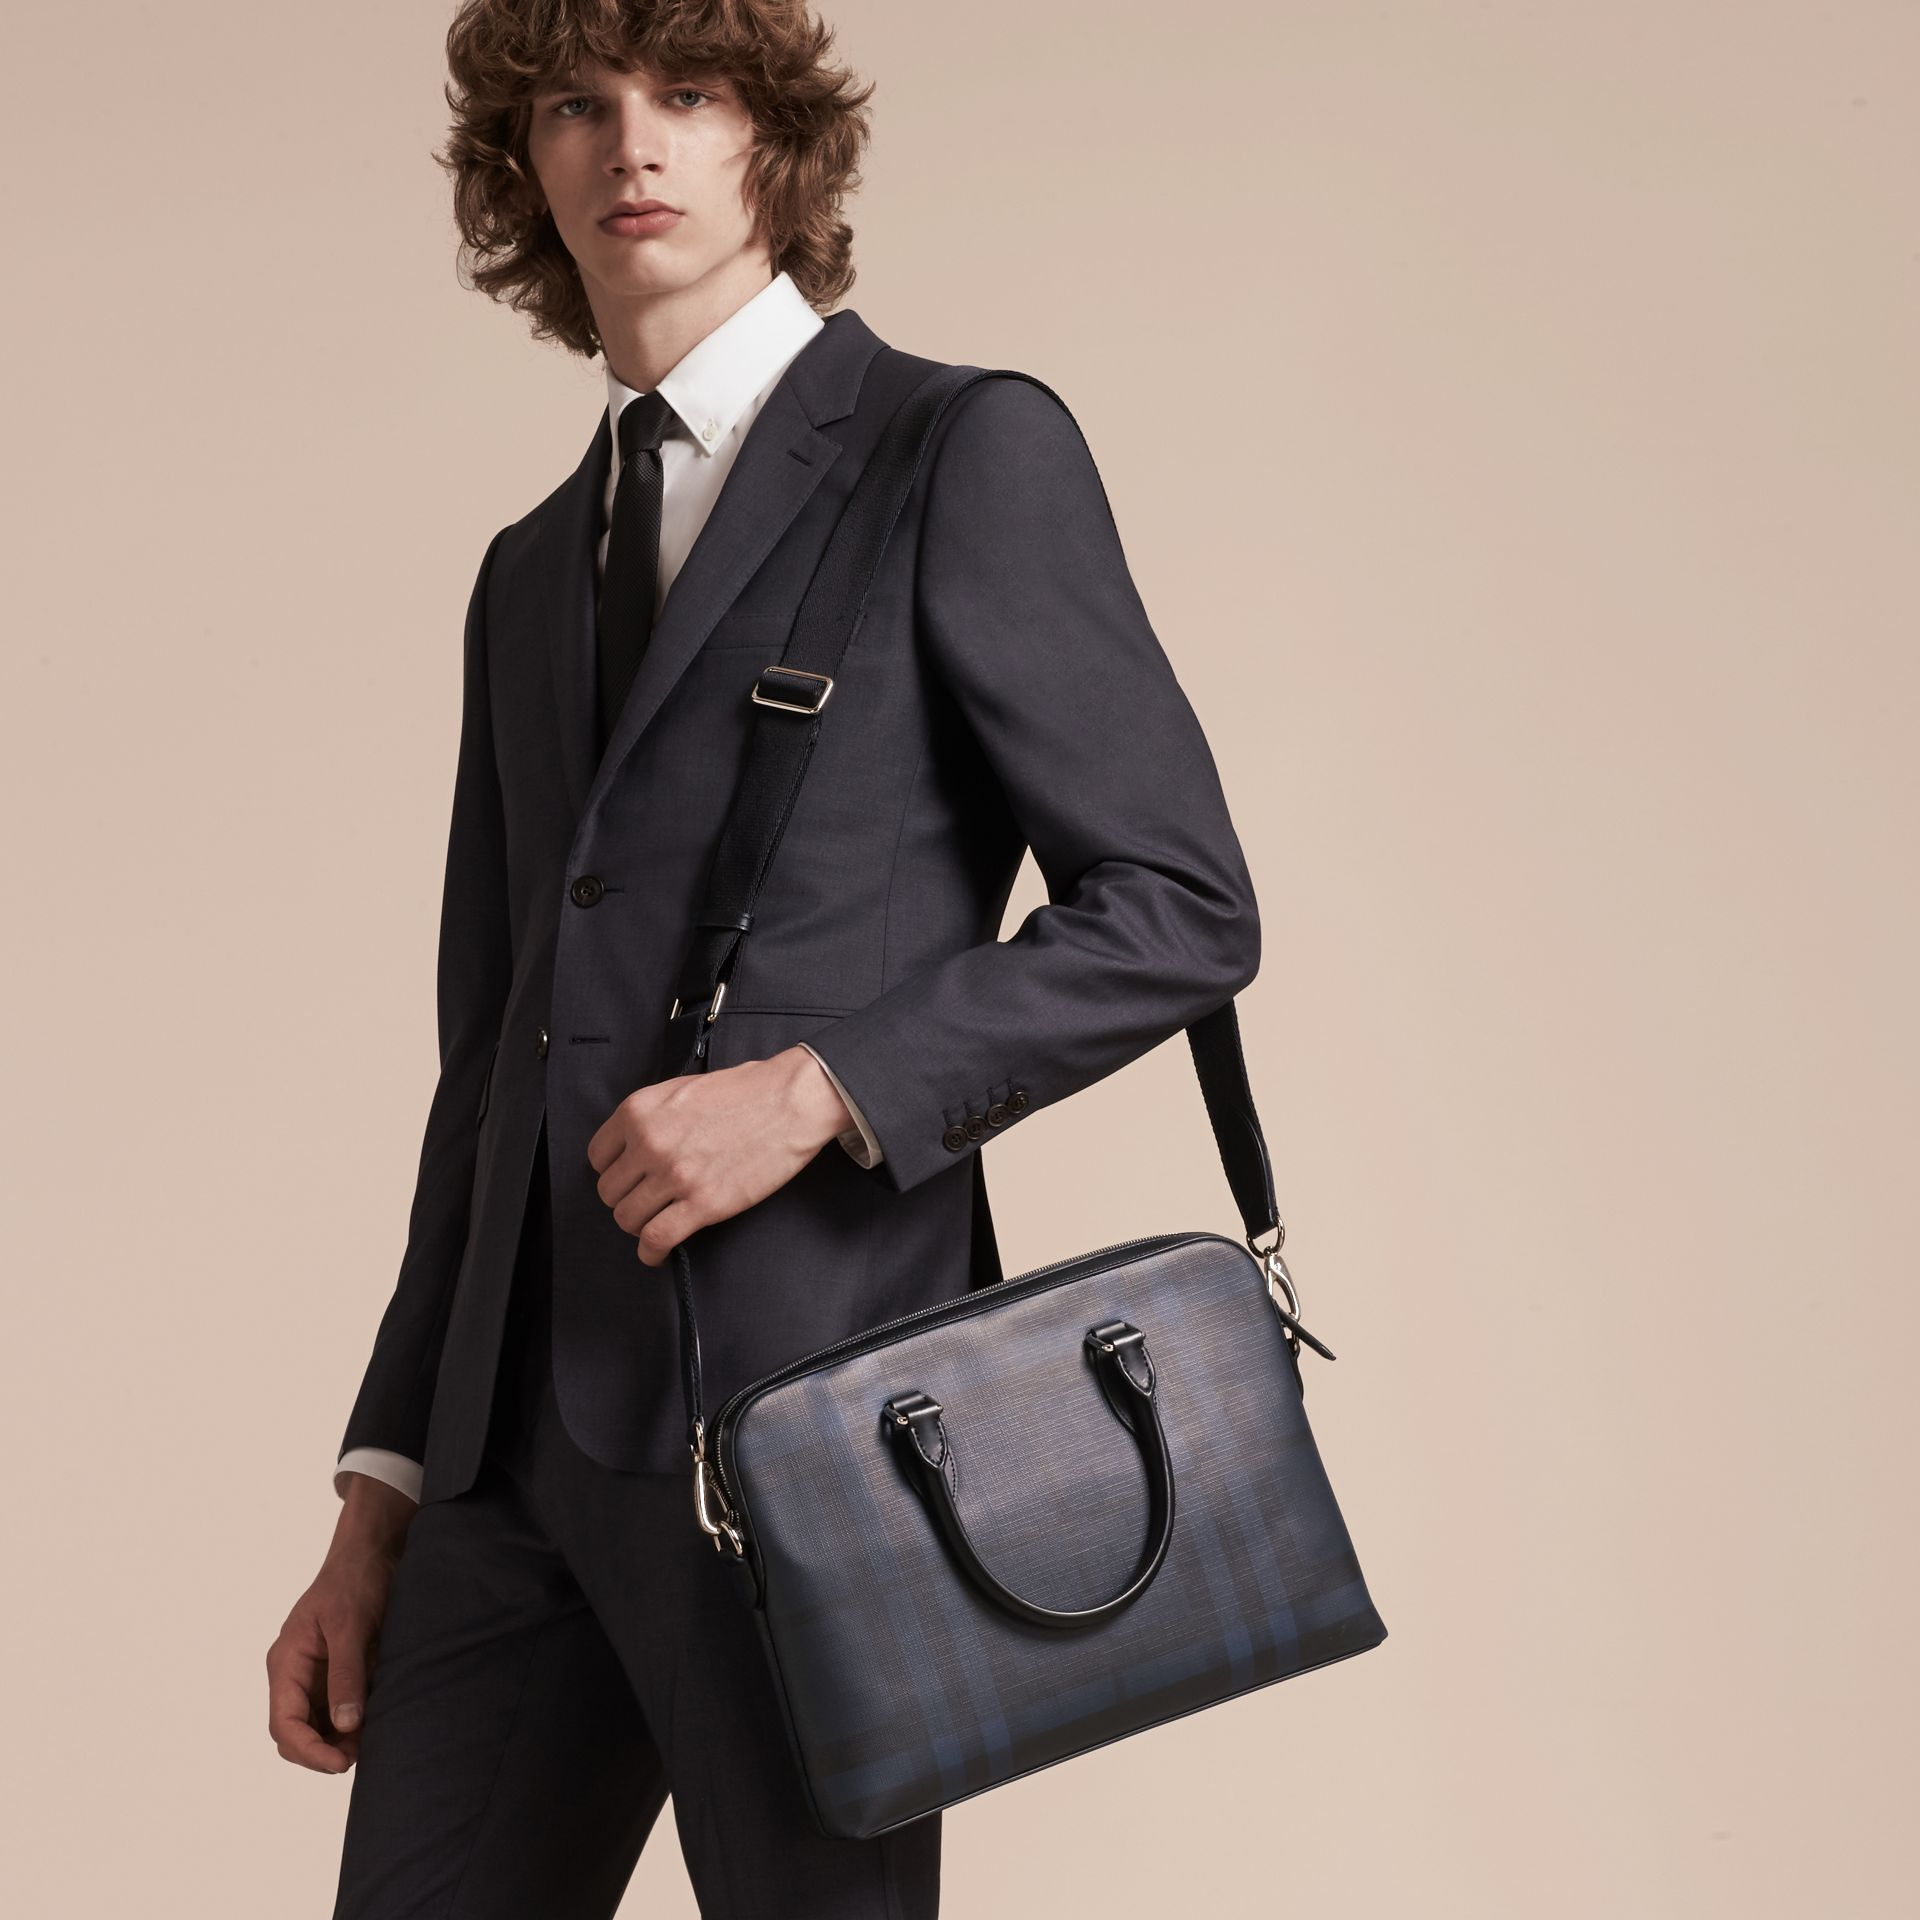 Sac The Barrow fin avec motif London check (Marine/noir) - photo de la galerie 3